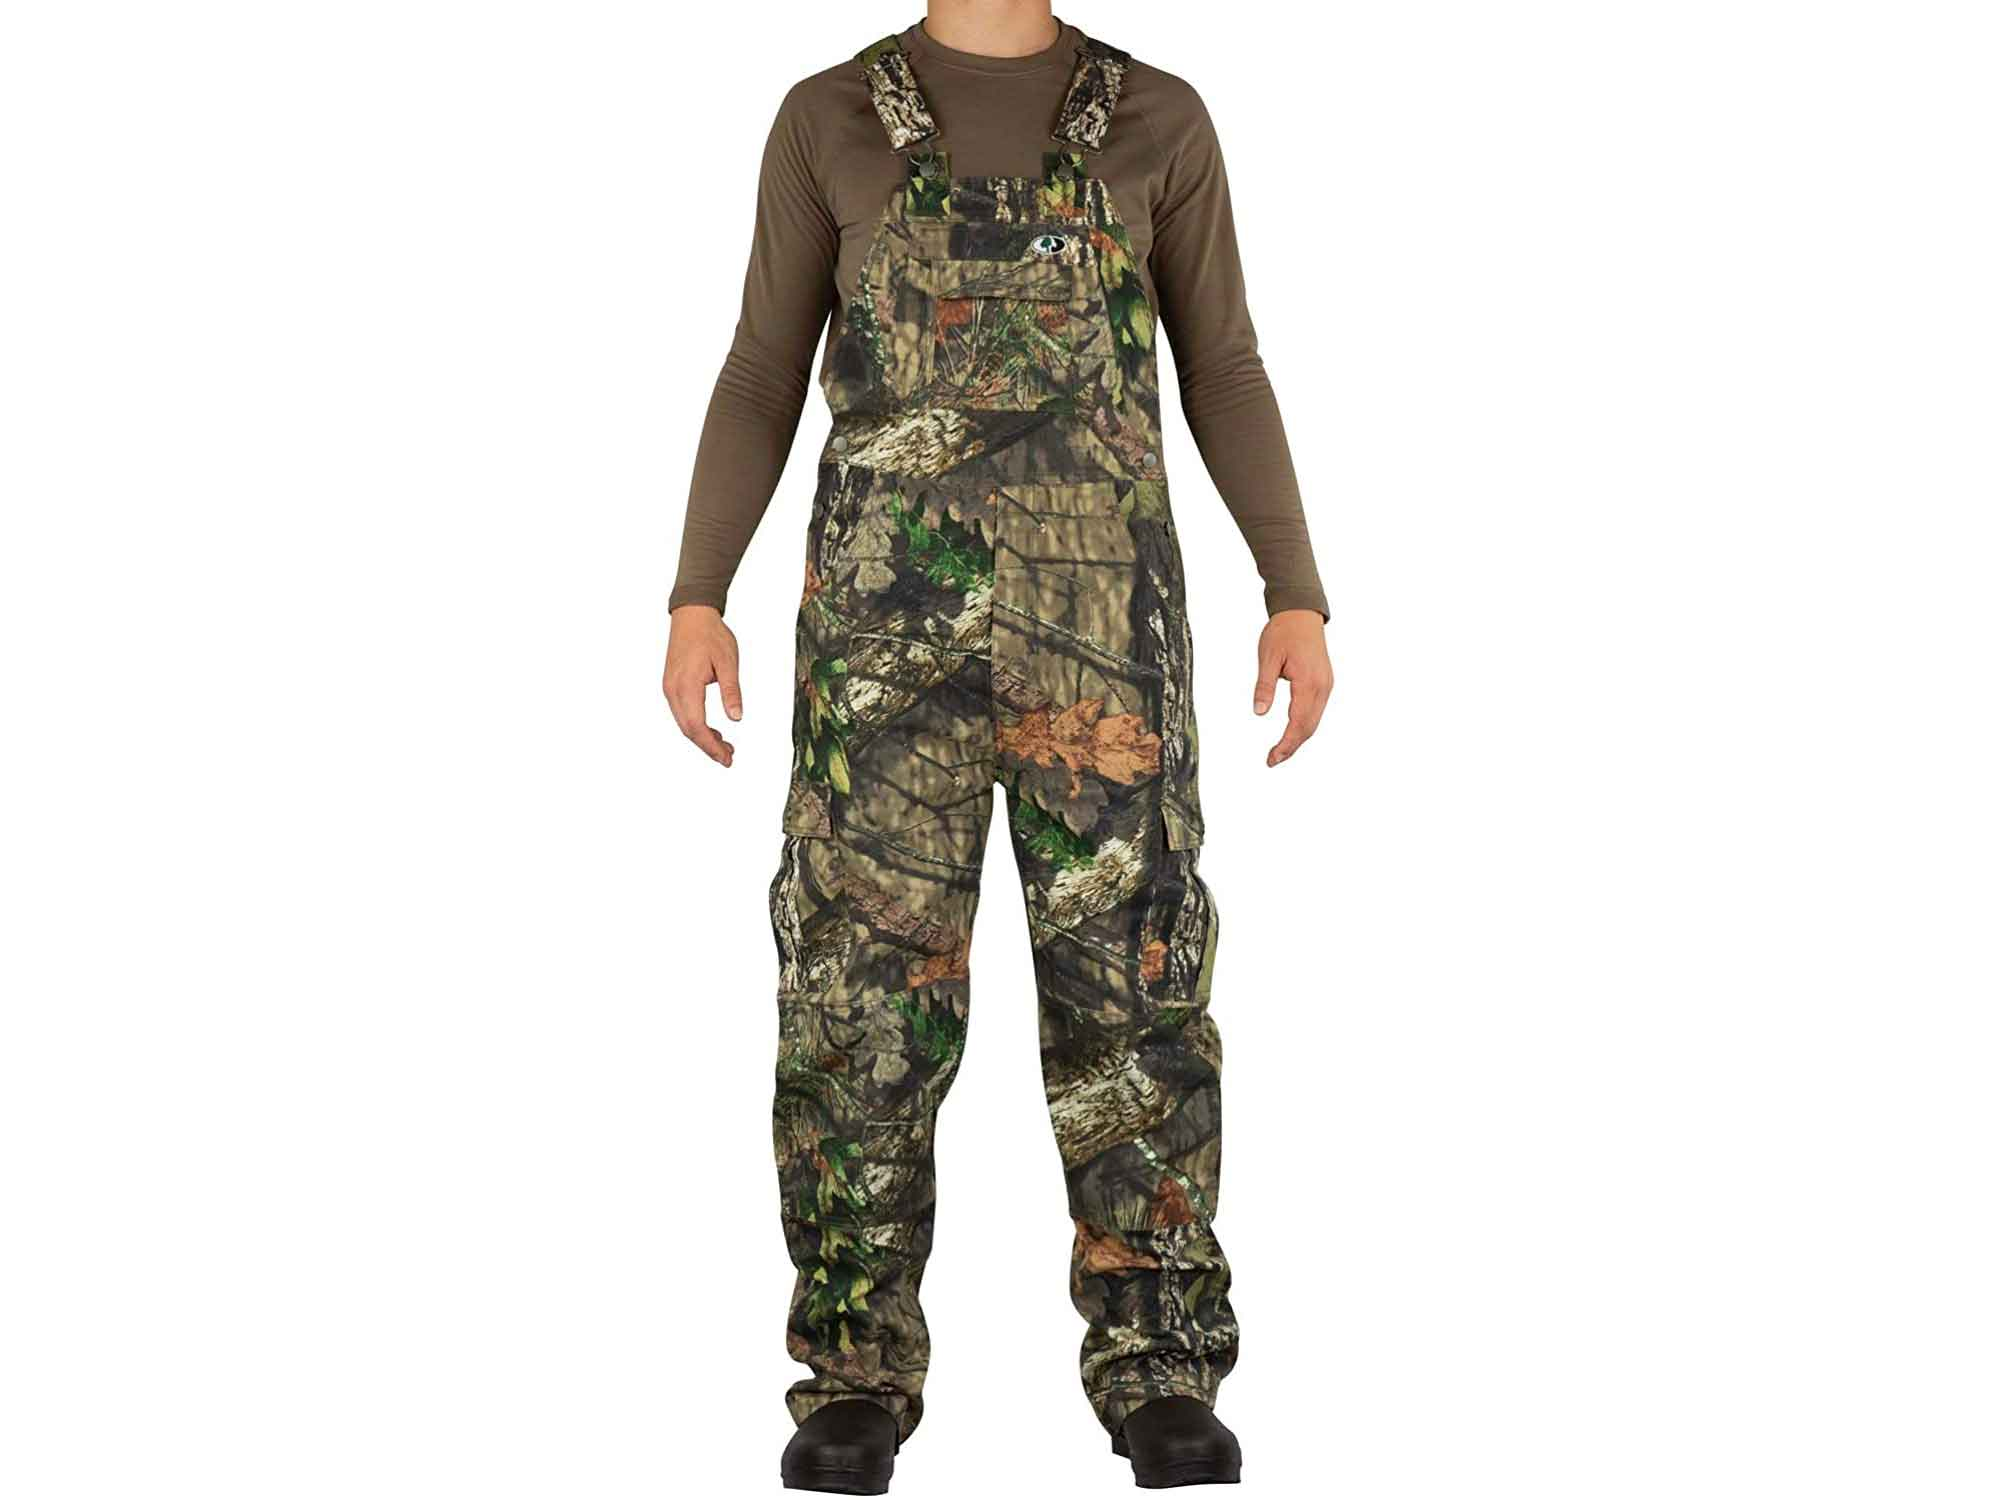 Mossy Oak Cotton Mill 2.0 Camo Hunting Bibs, Uninsulated Camo Overalls for Men